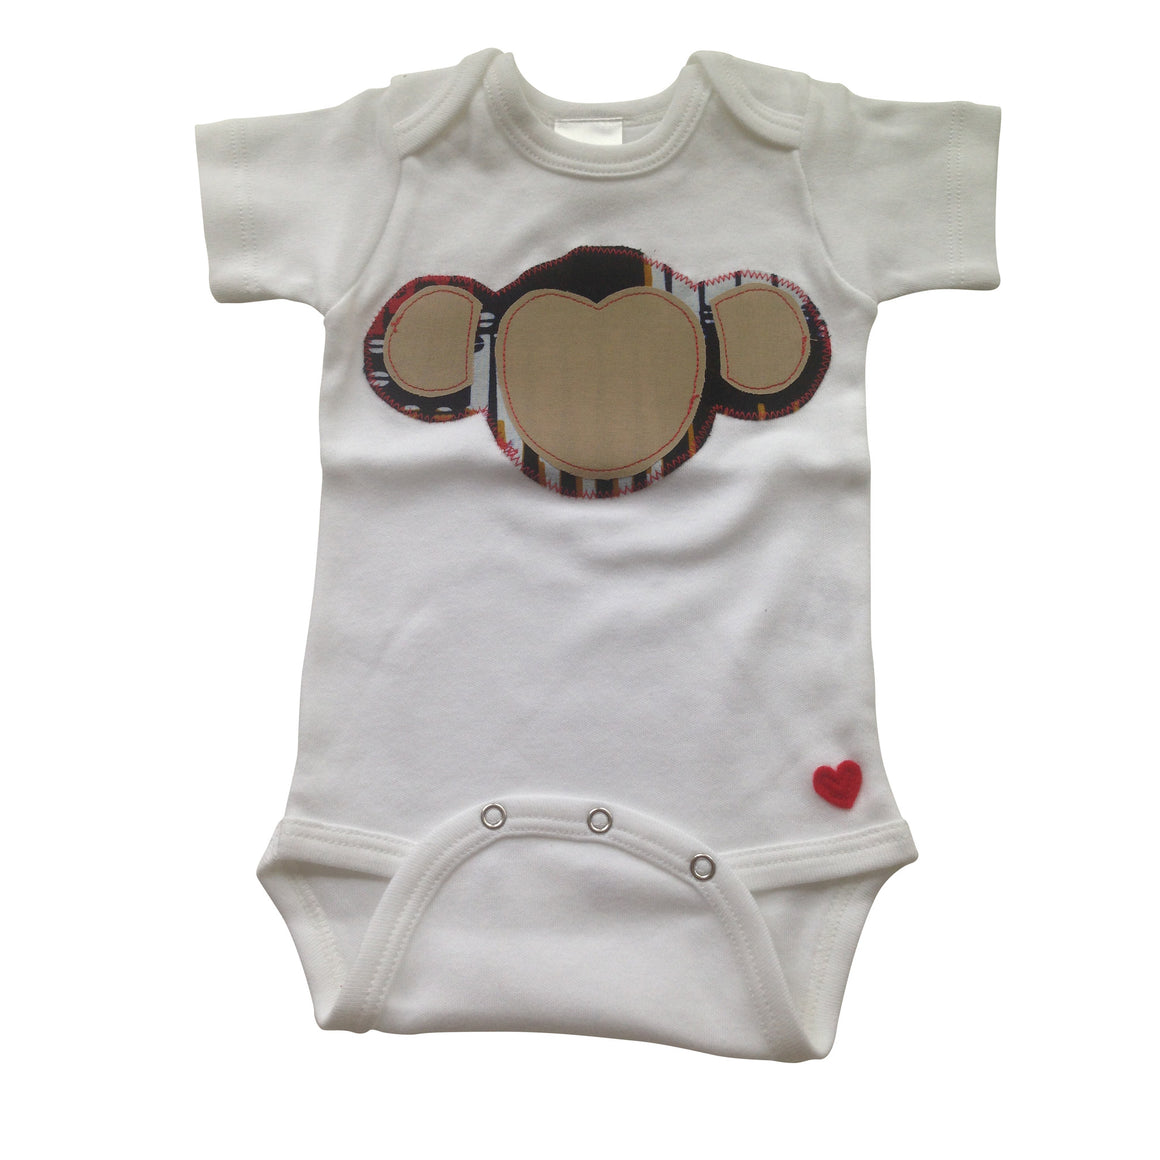 3-Piece Welcome Home Gift Set: Terrific Monkey Appliqué Bodysuit, Baby Bib and Burp Cloth (Navy & Tan)